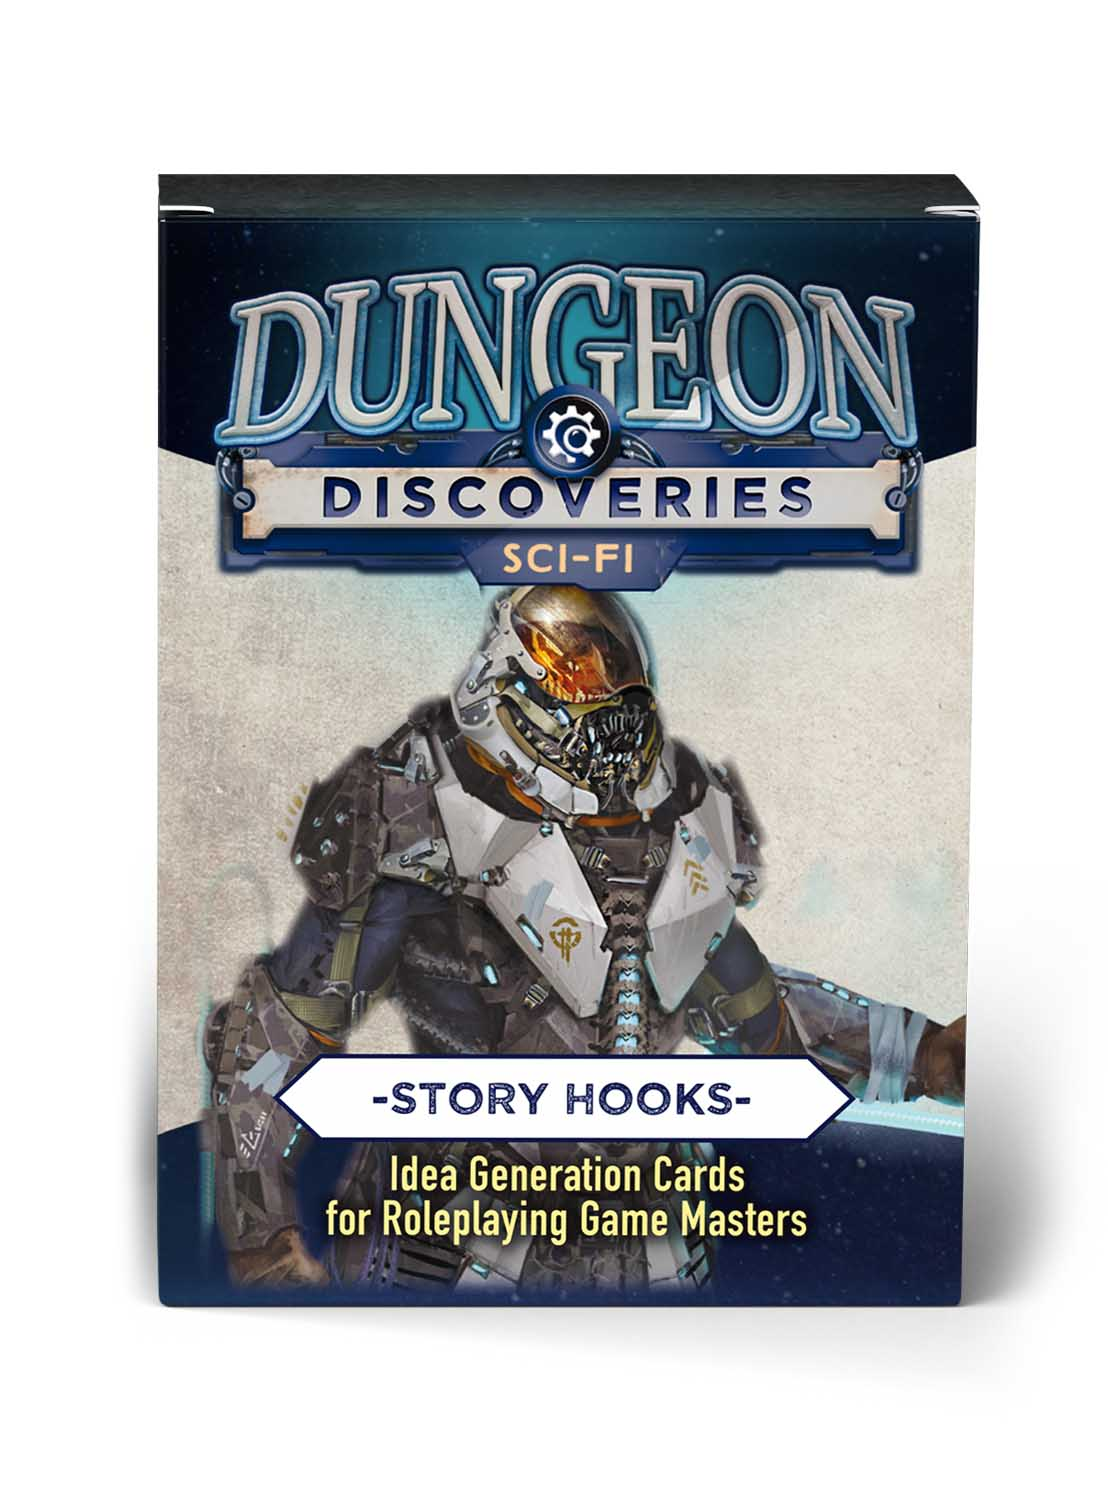 Dungeon Discoveries – SciFi Story Hooks